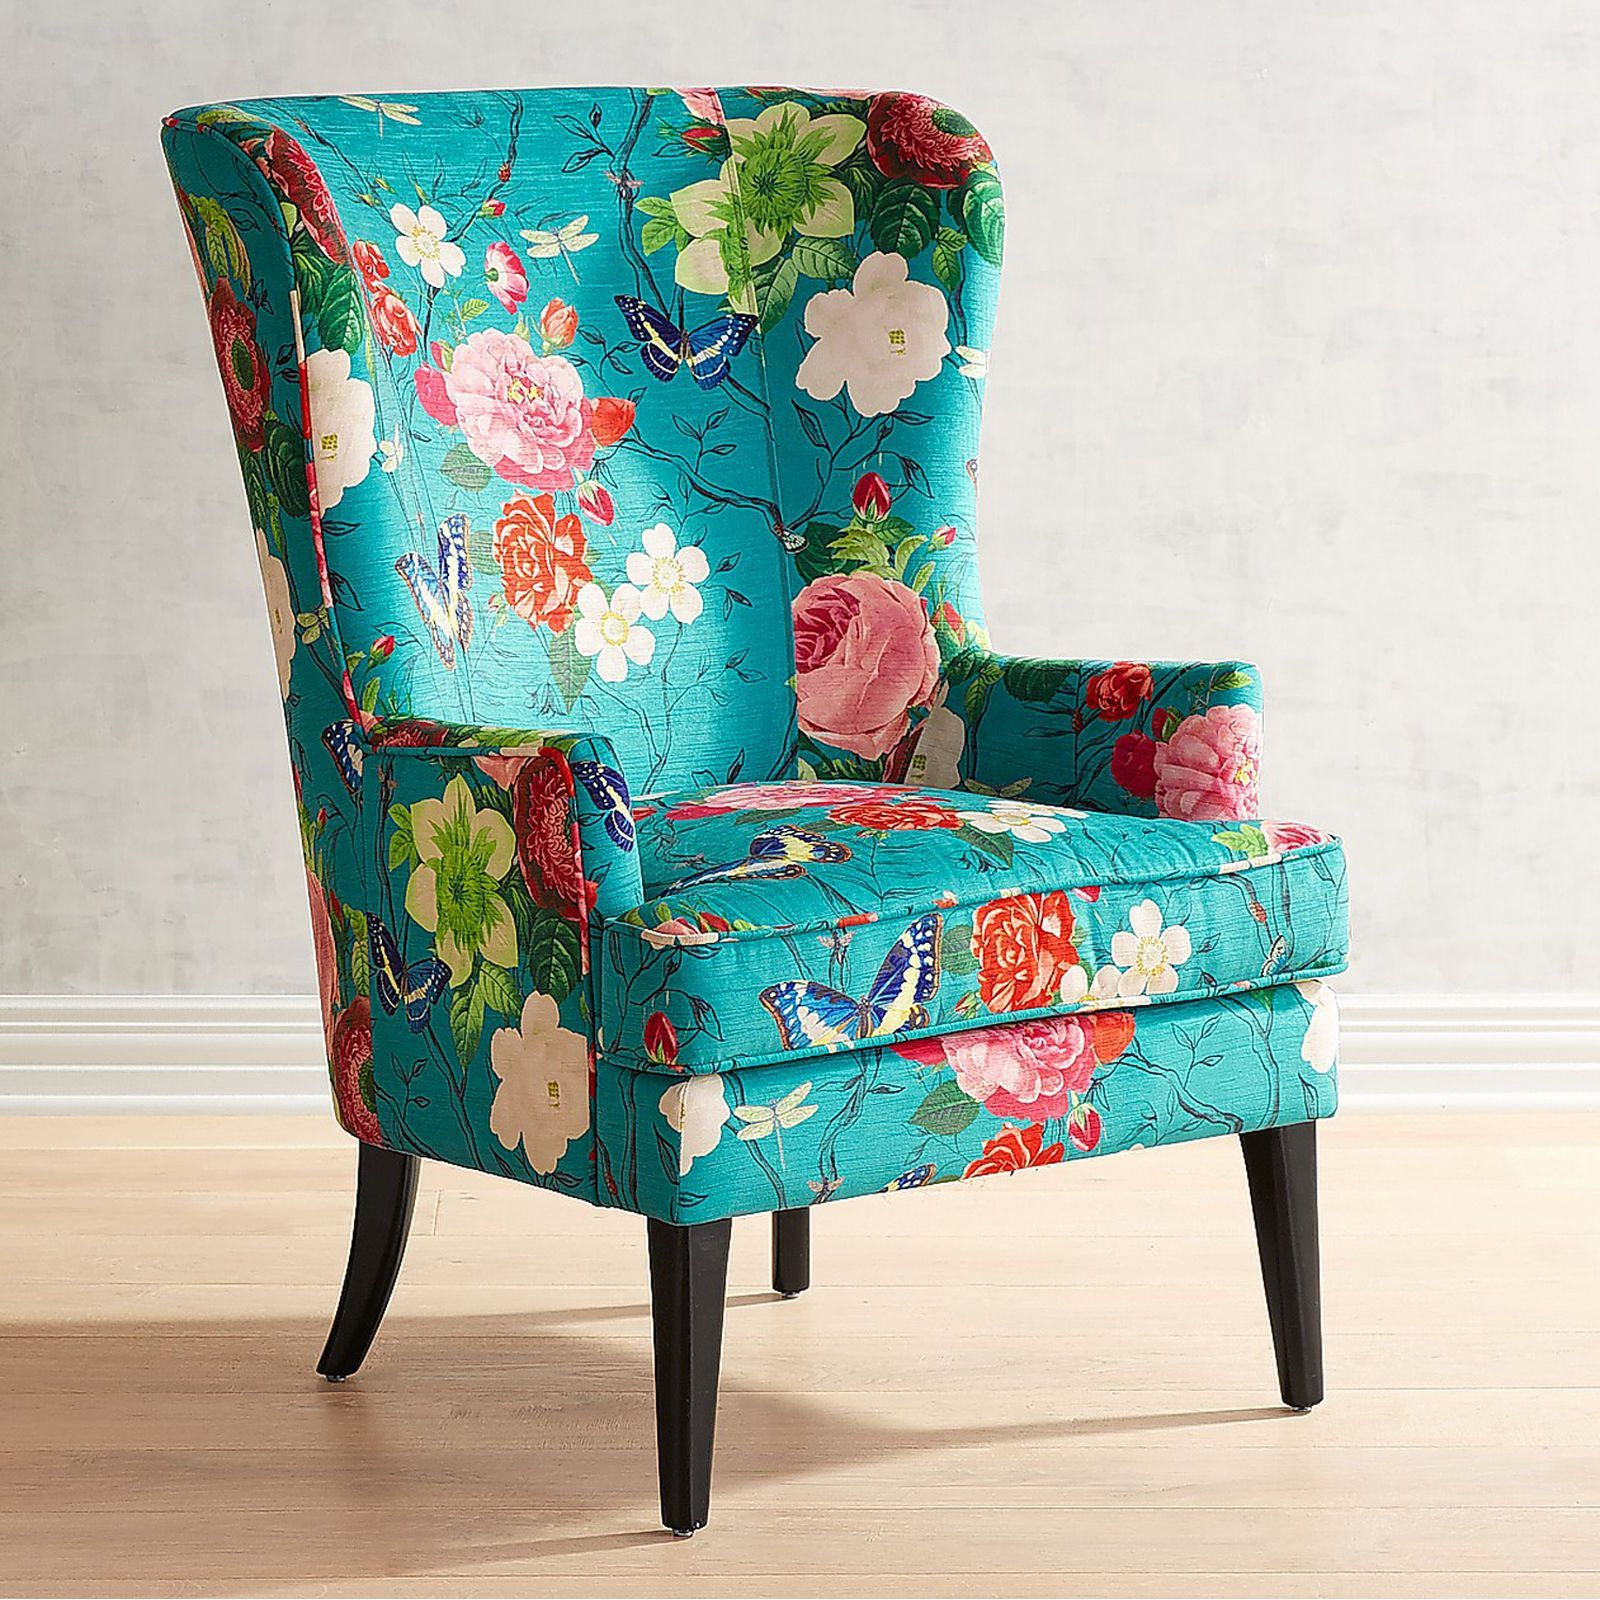 Asher Flynn Floral Print Chair Pier 1 Imports Cozychair